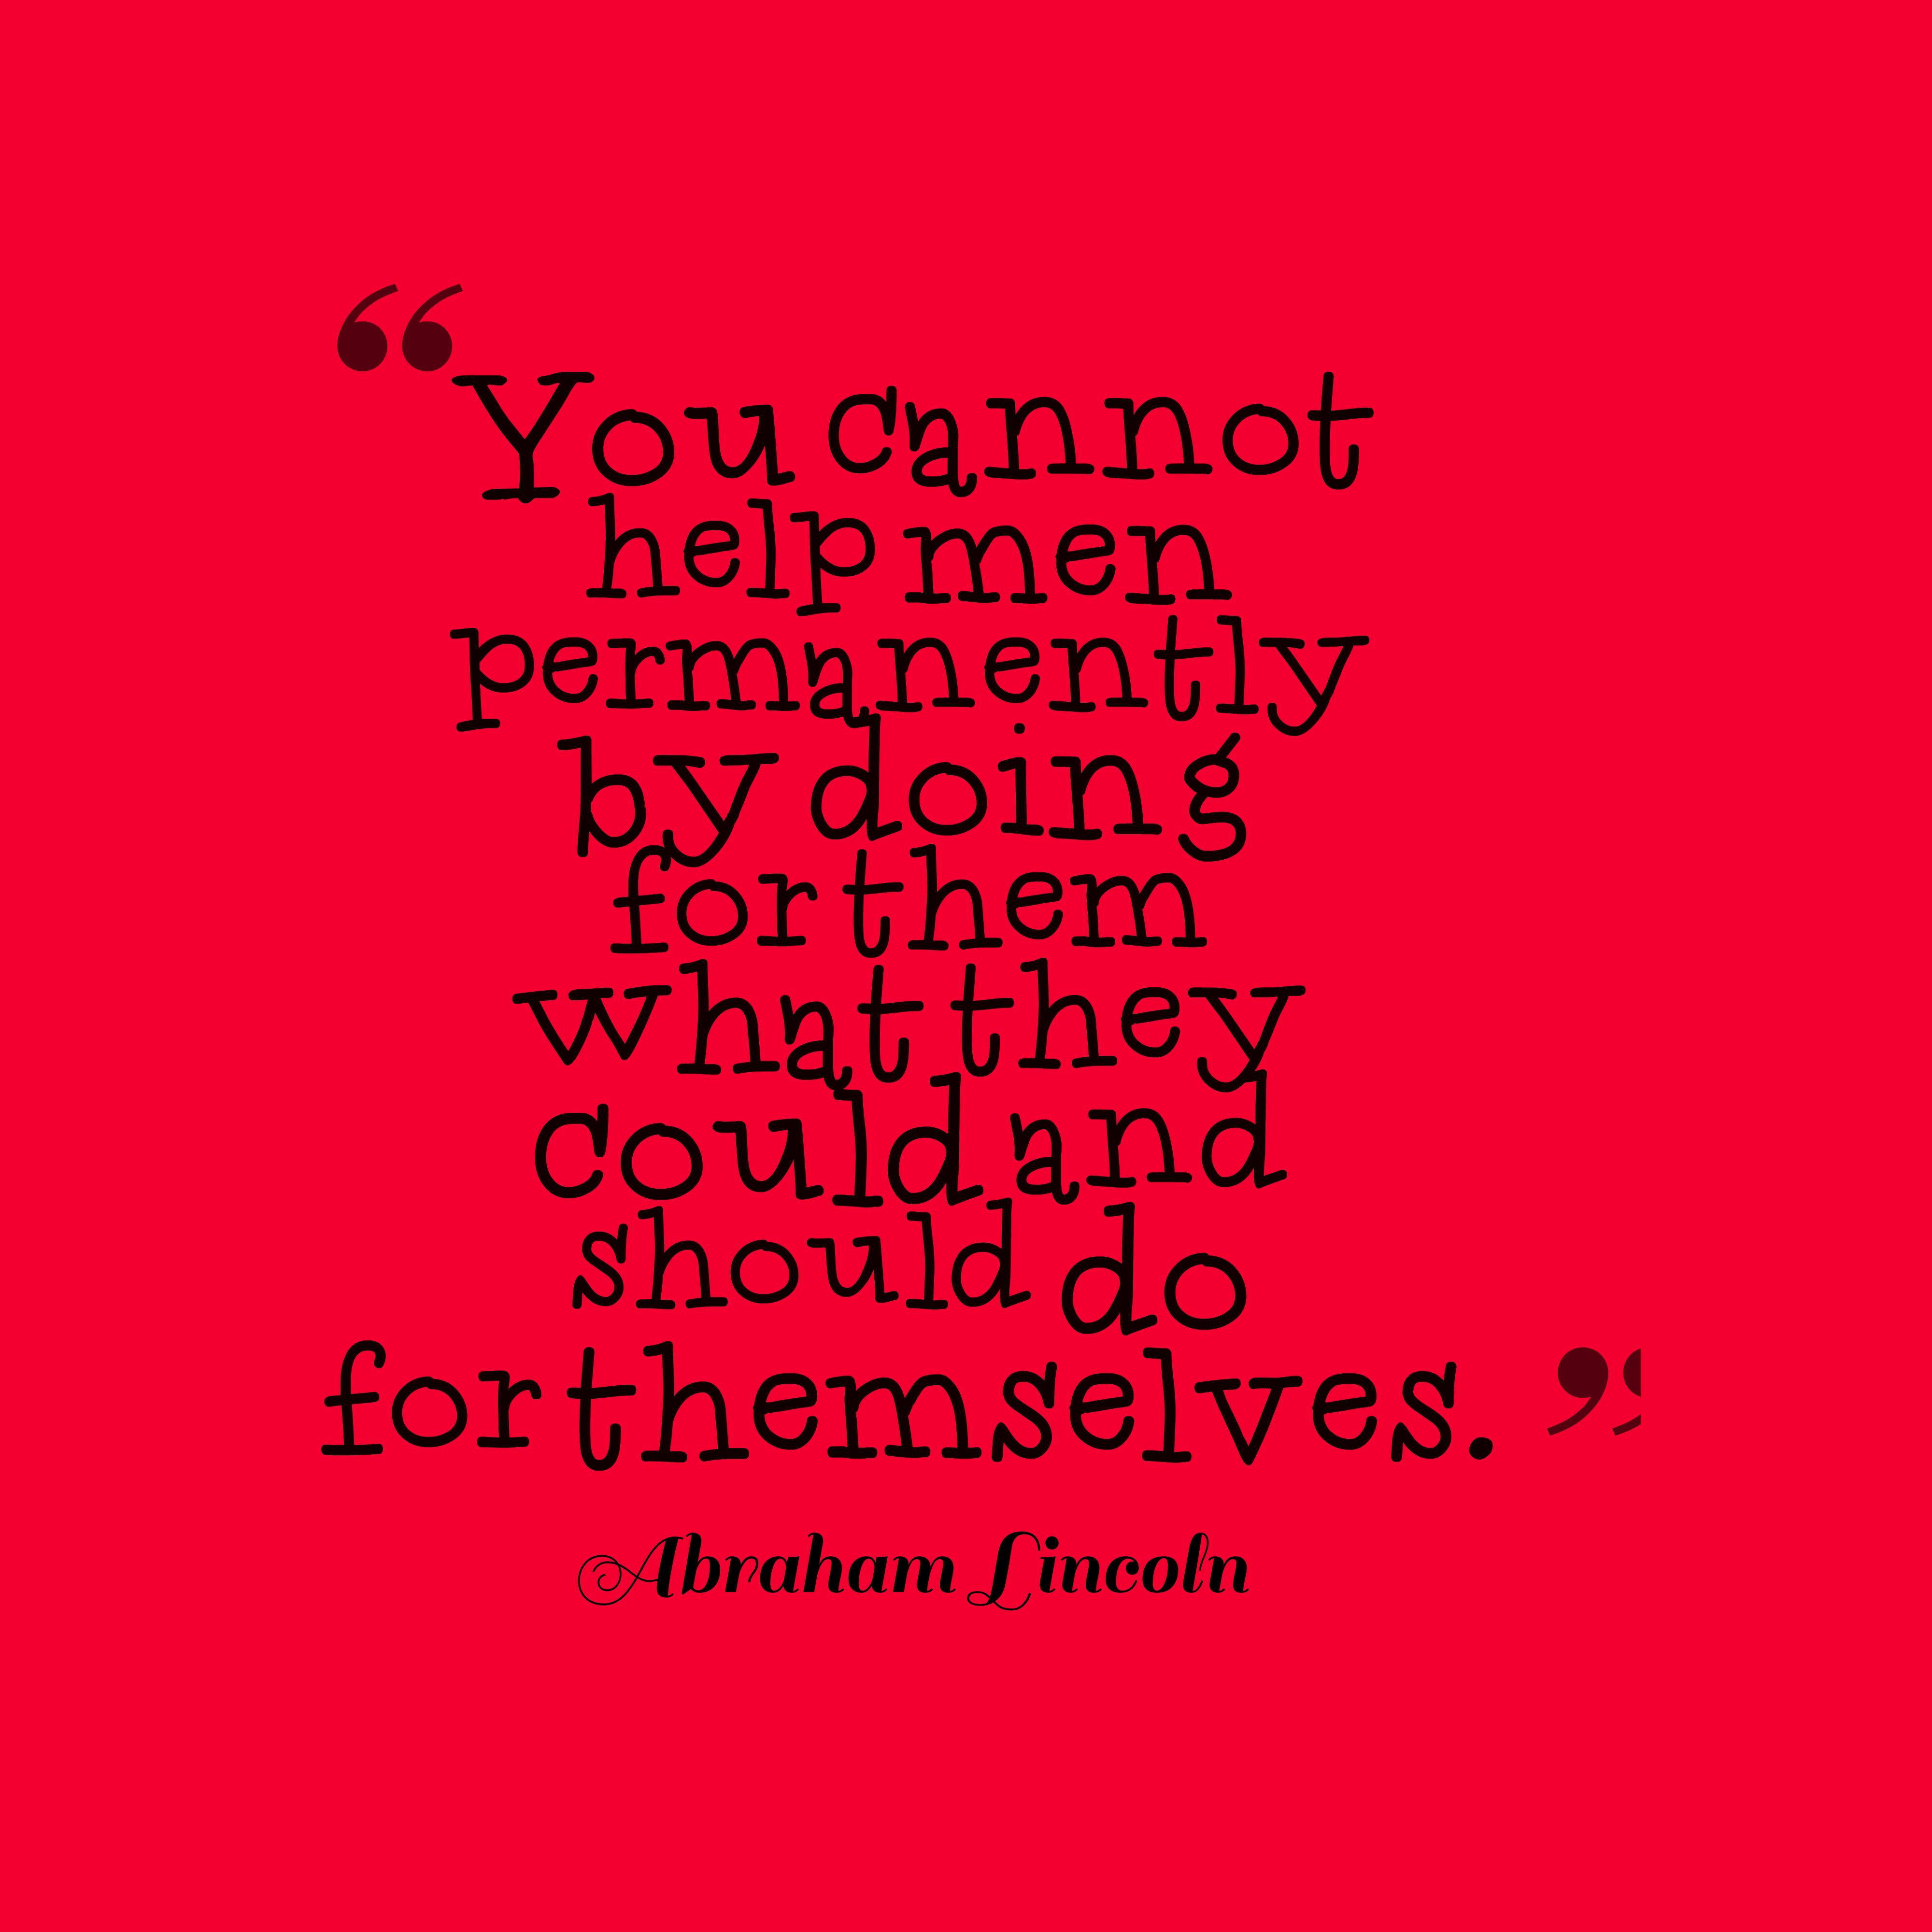 Quotes image of You cannot help men permanently by doing for them what they could and should do for themselves.